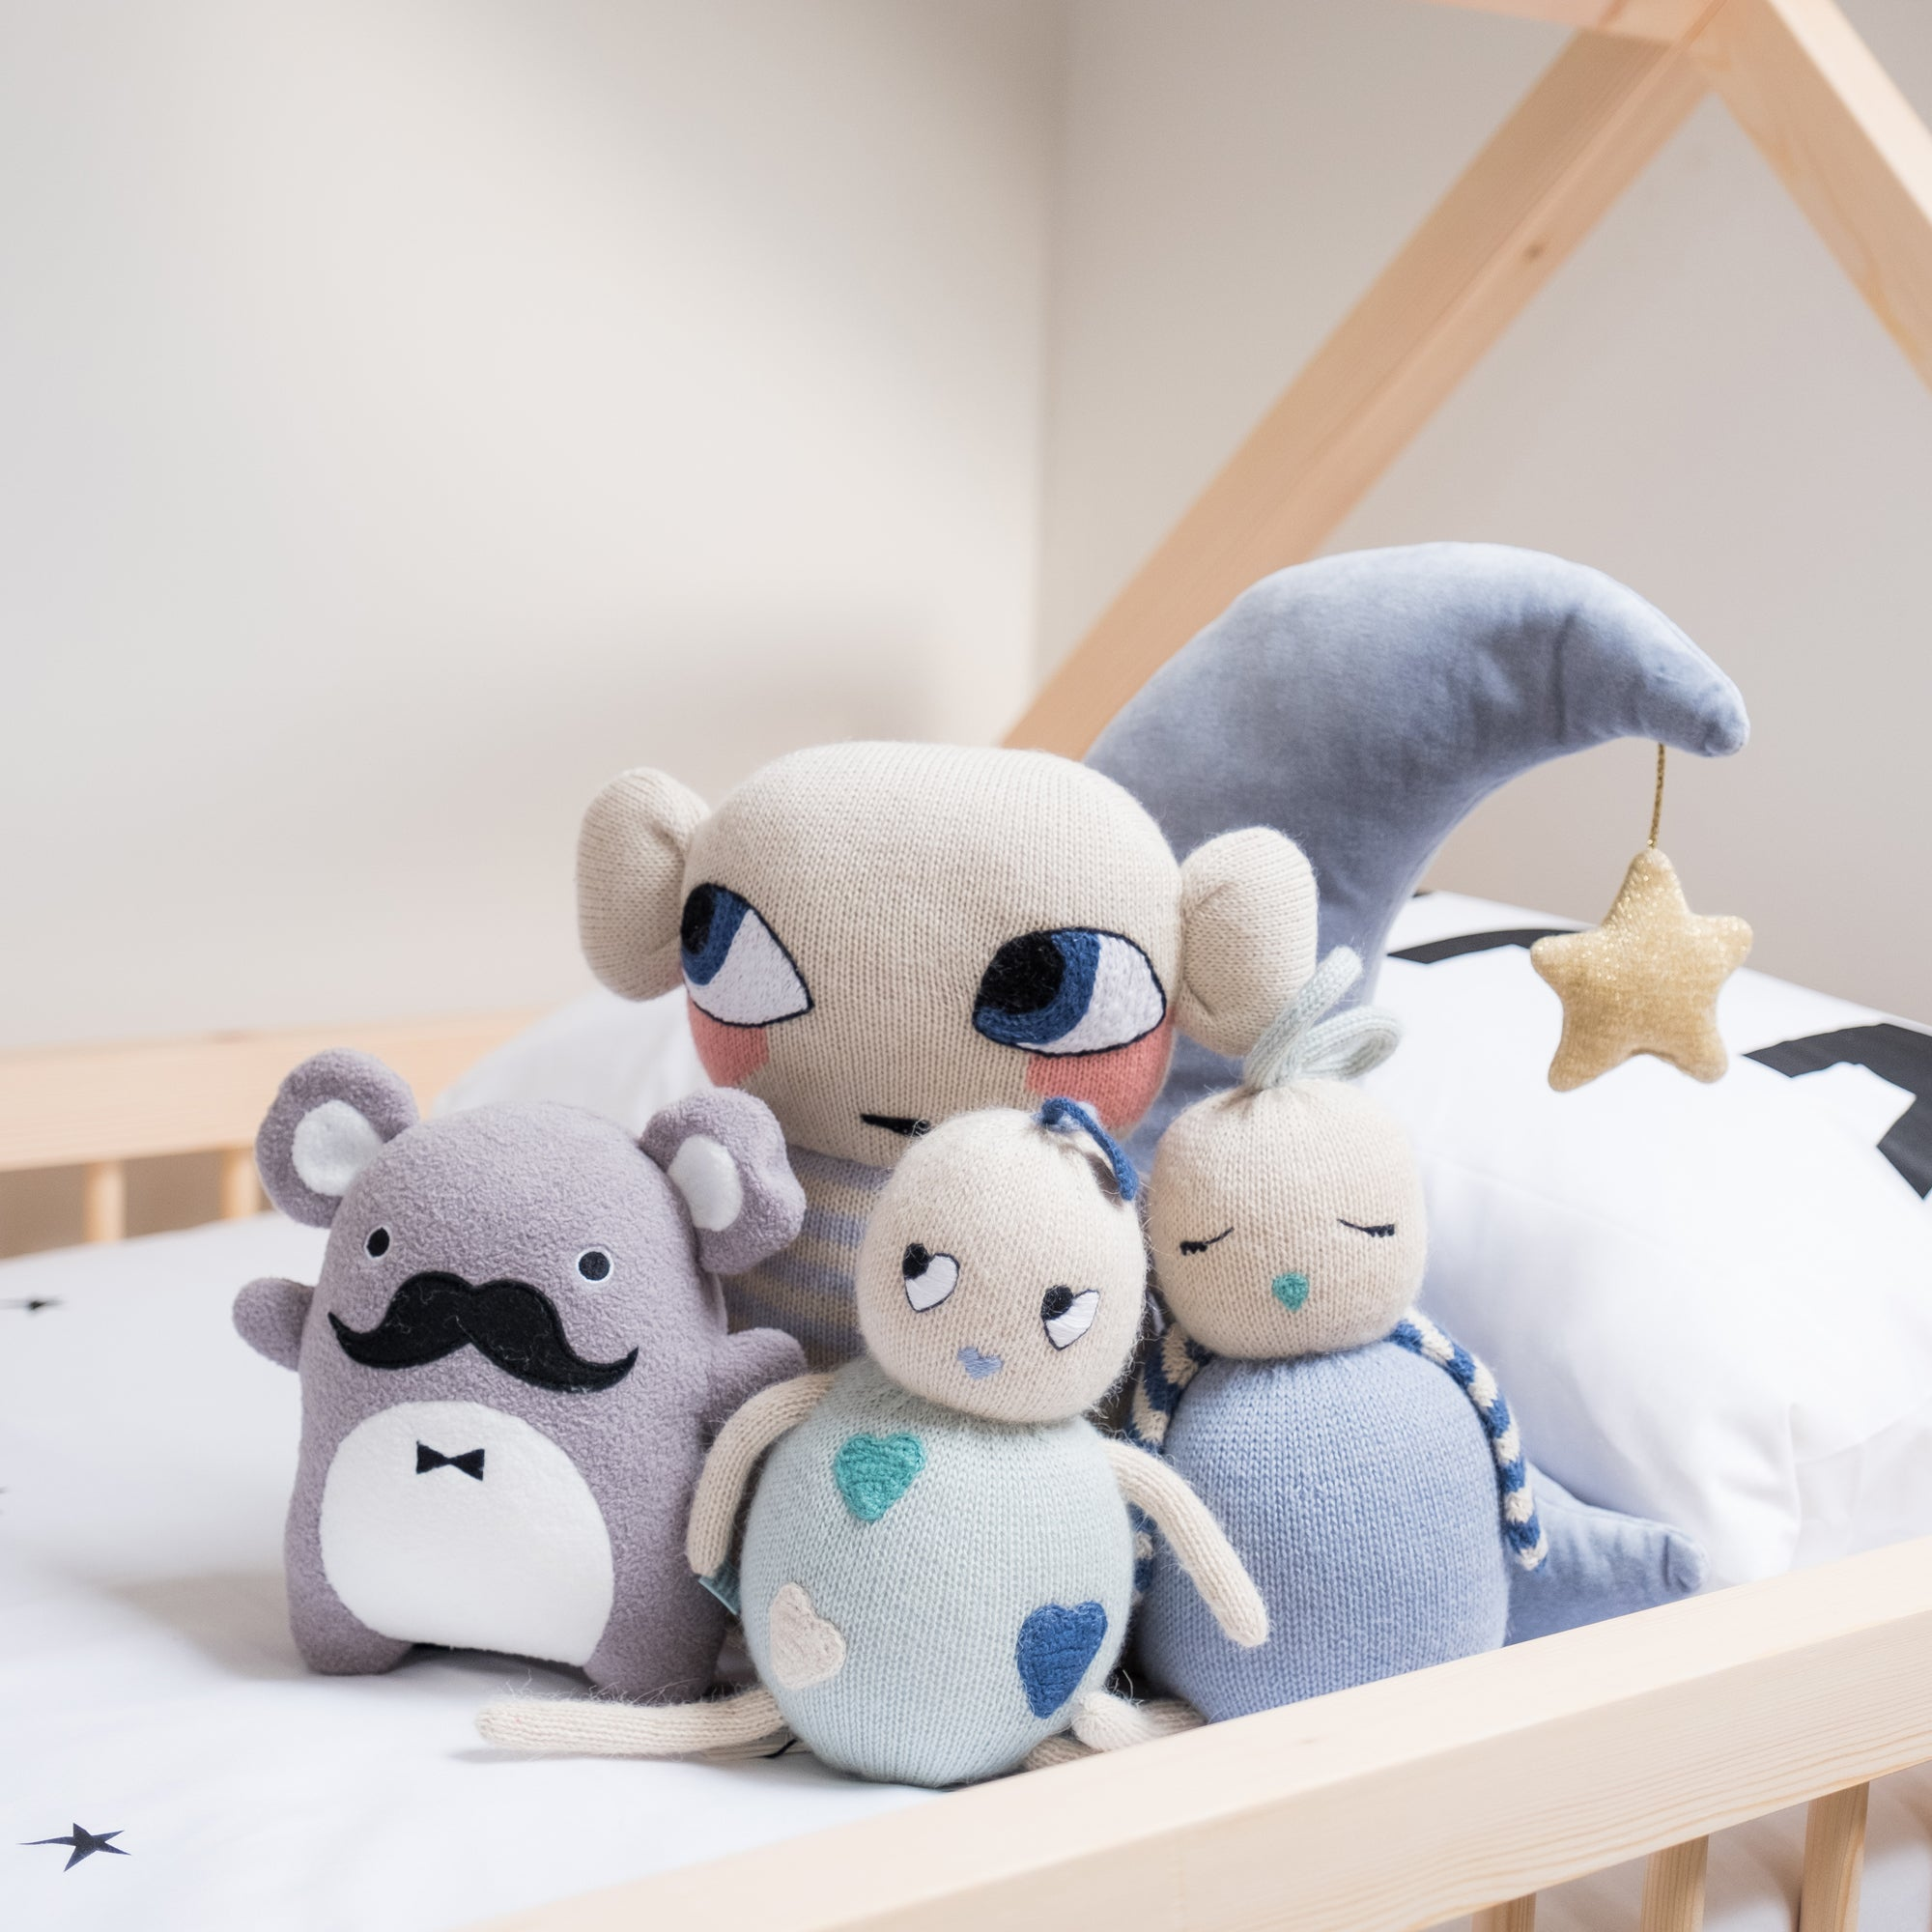 Children's Cushions and Soft Toys, available at Bobby Rabbit.